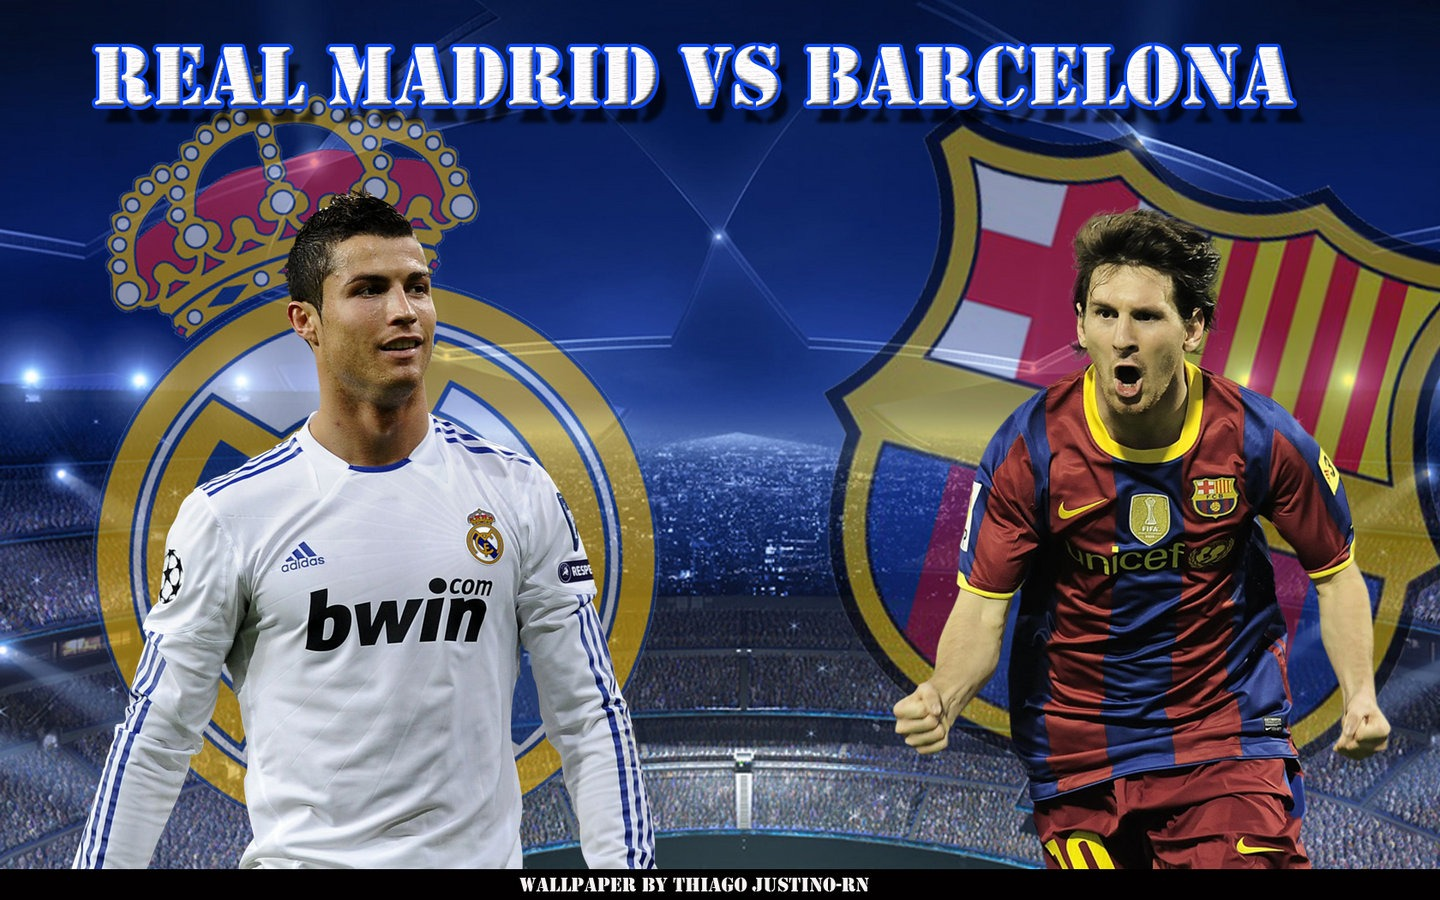 wallpaper_real_madrid_vs_barcelona_cristiano_ronaldo_lionel_messi_fc_barcelona_real_madrid